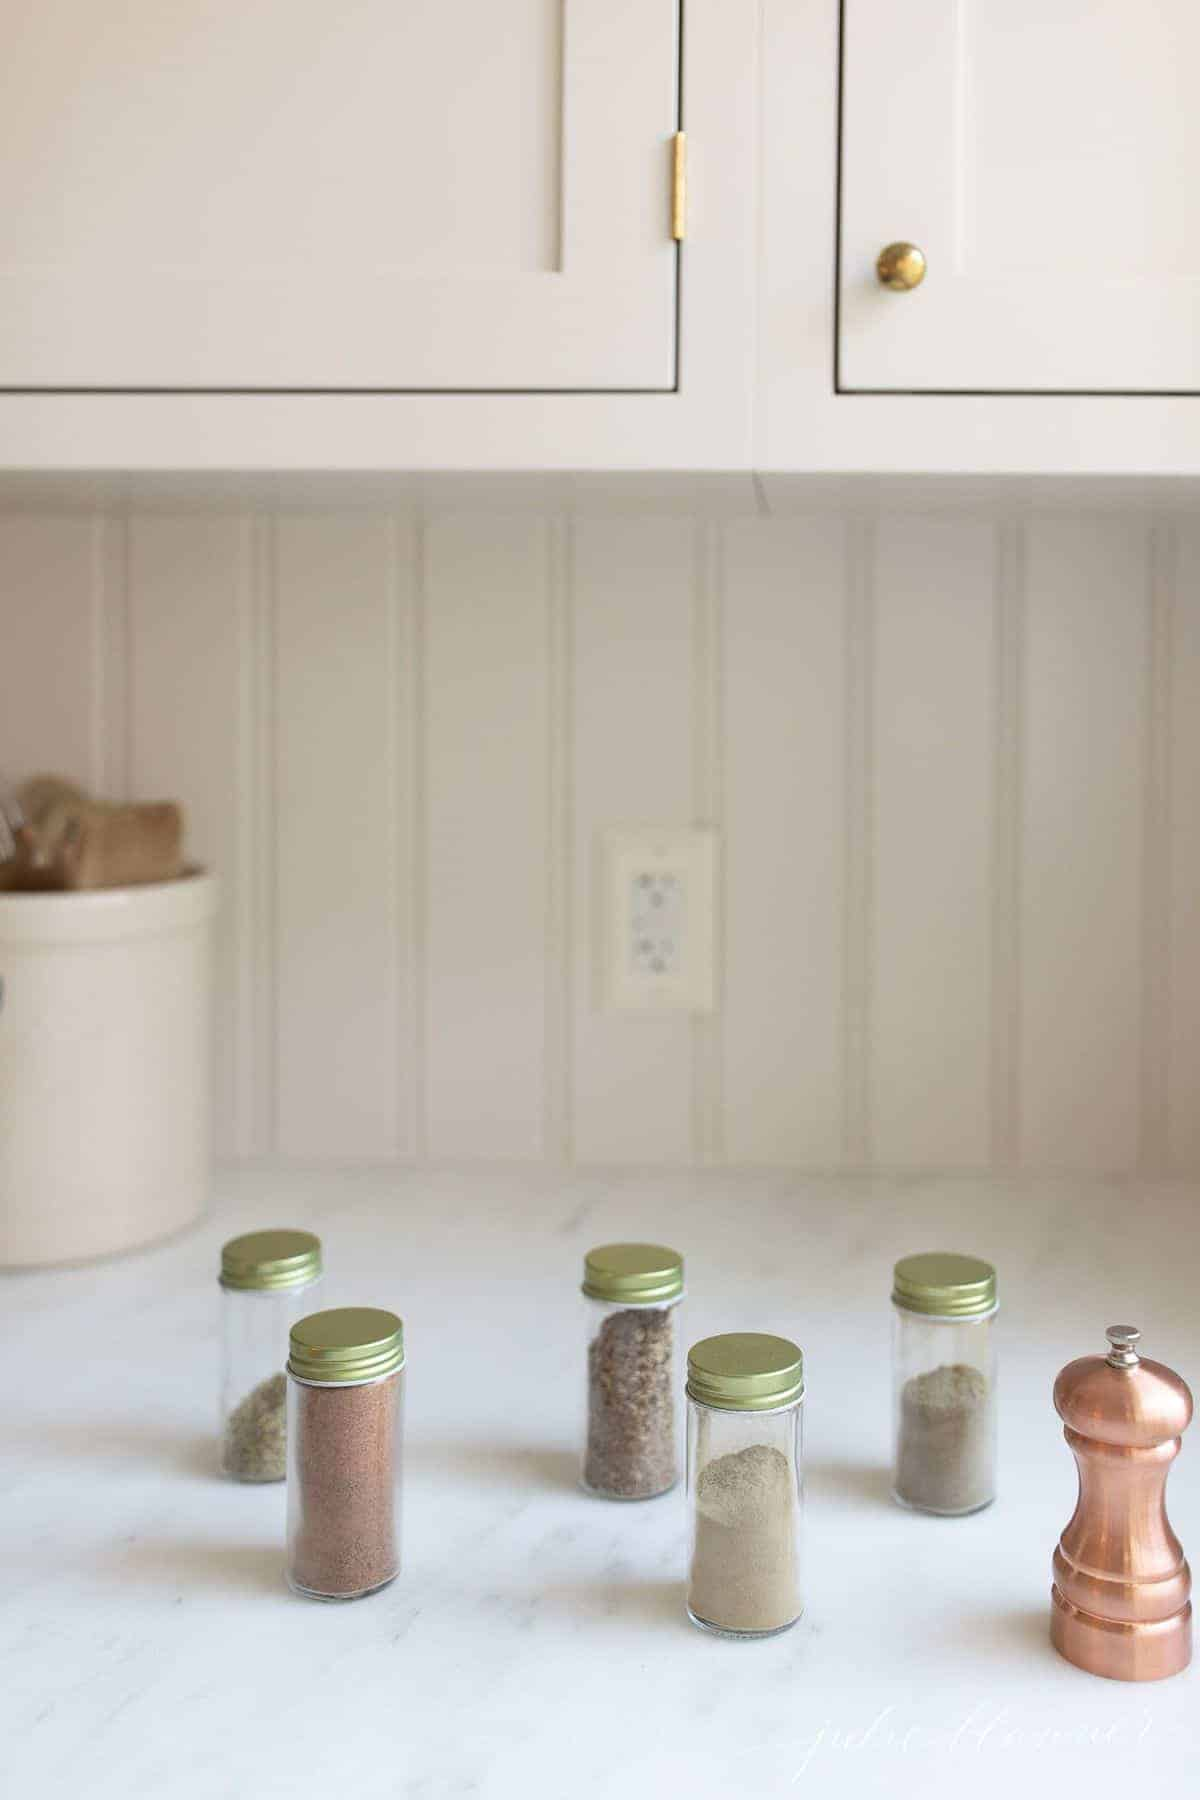 White kitchen with jars of spices in a row for poultry seasoning mix.